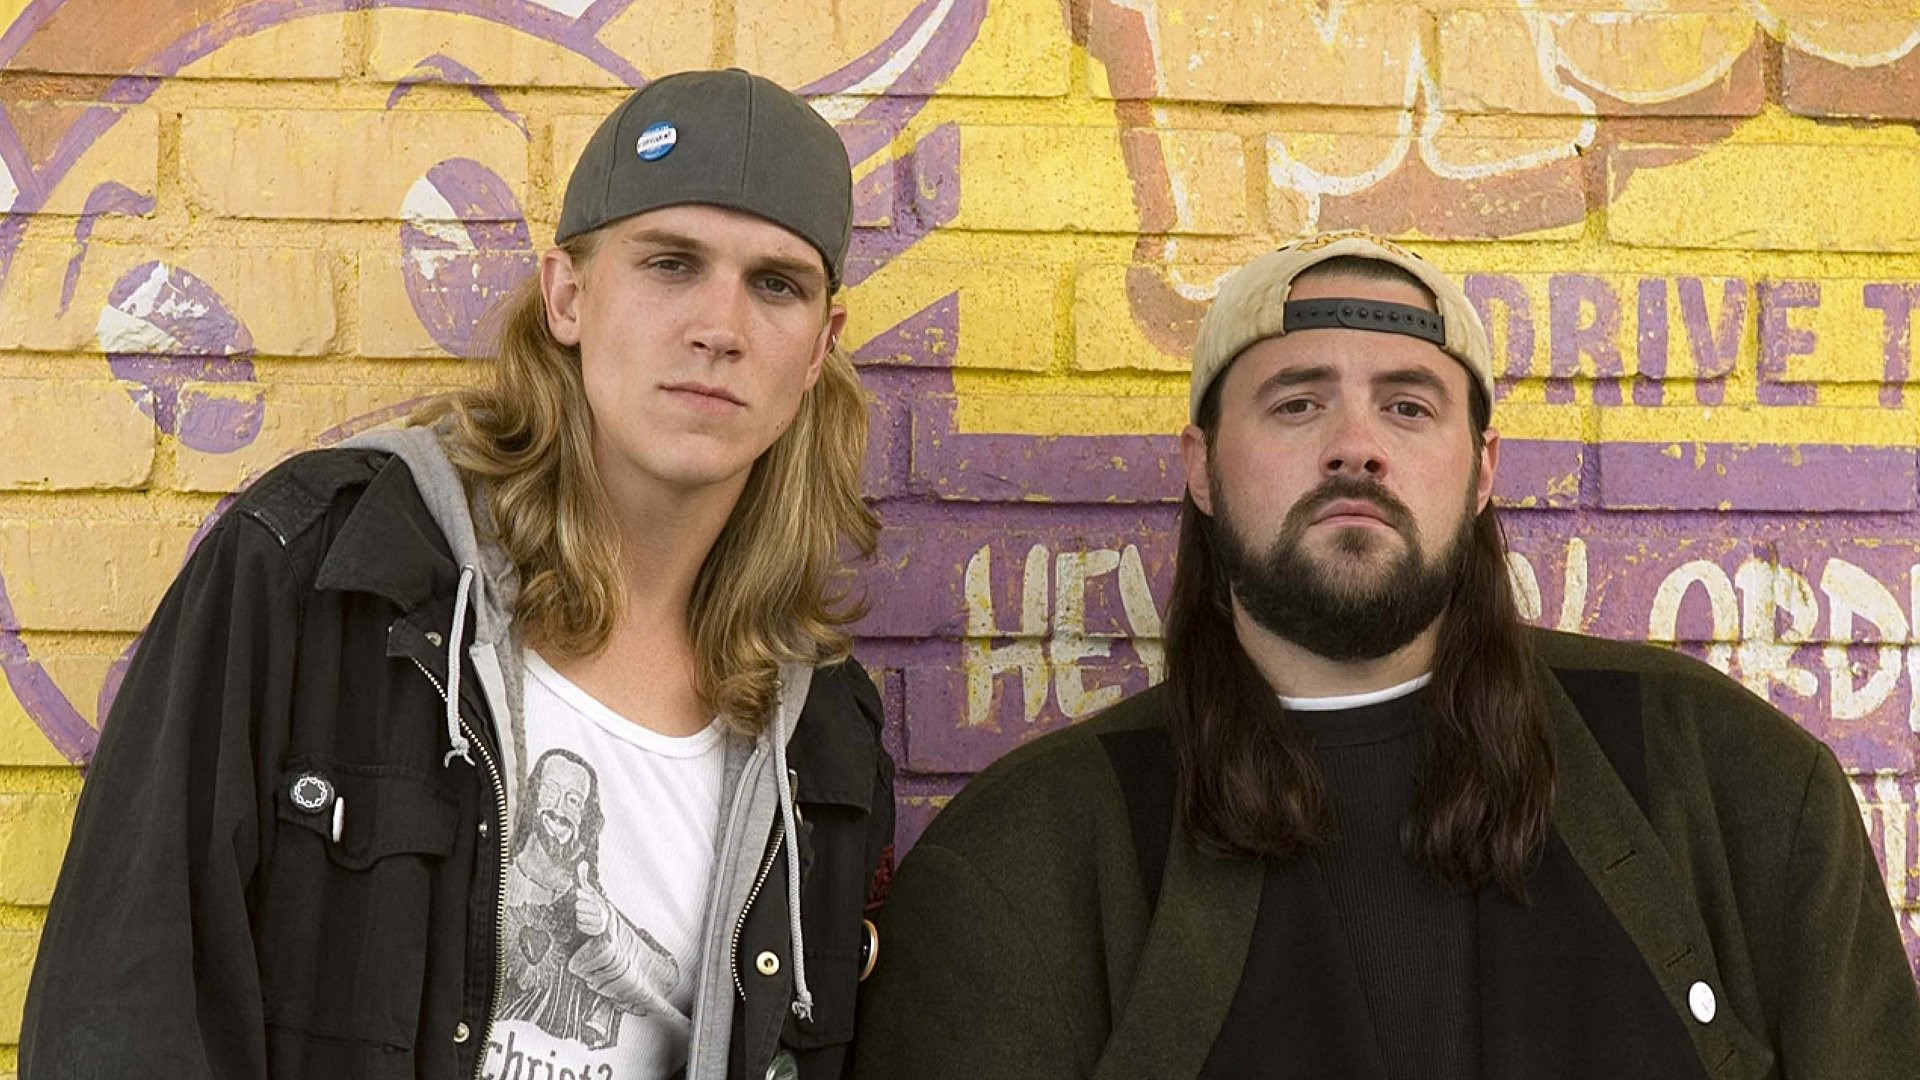 1920x1080 Jay And Silent Bob Strike Back Wallpaper 11 - 1920 X 1080